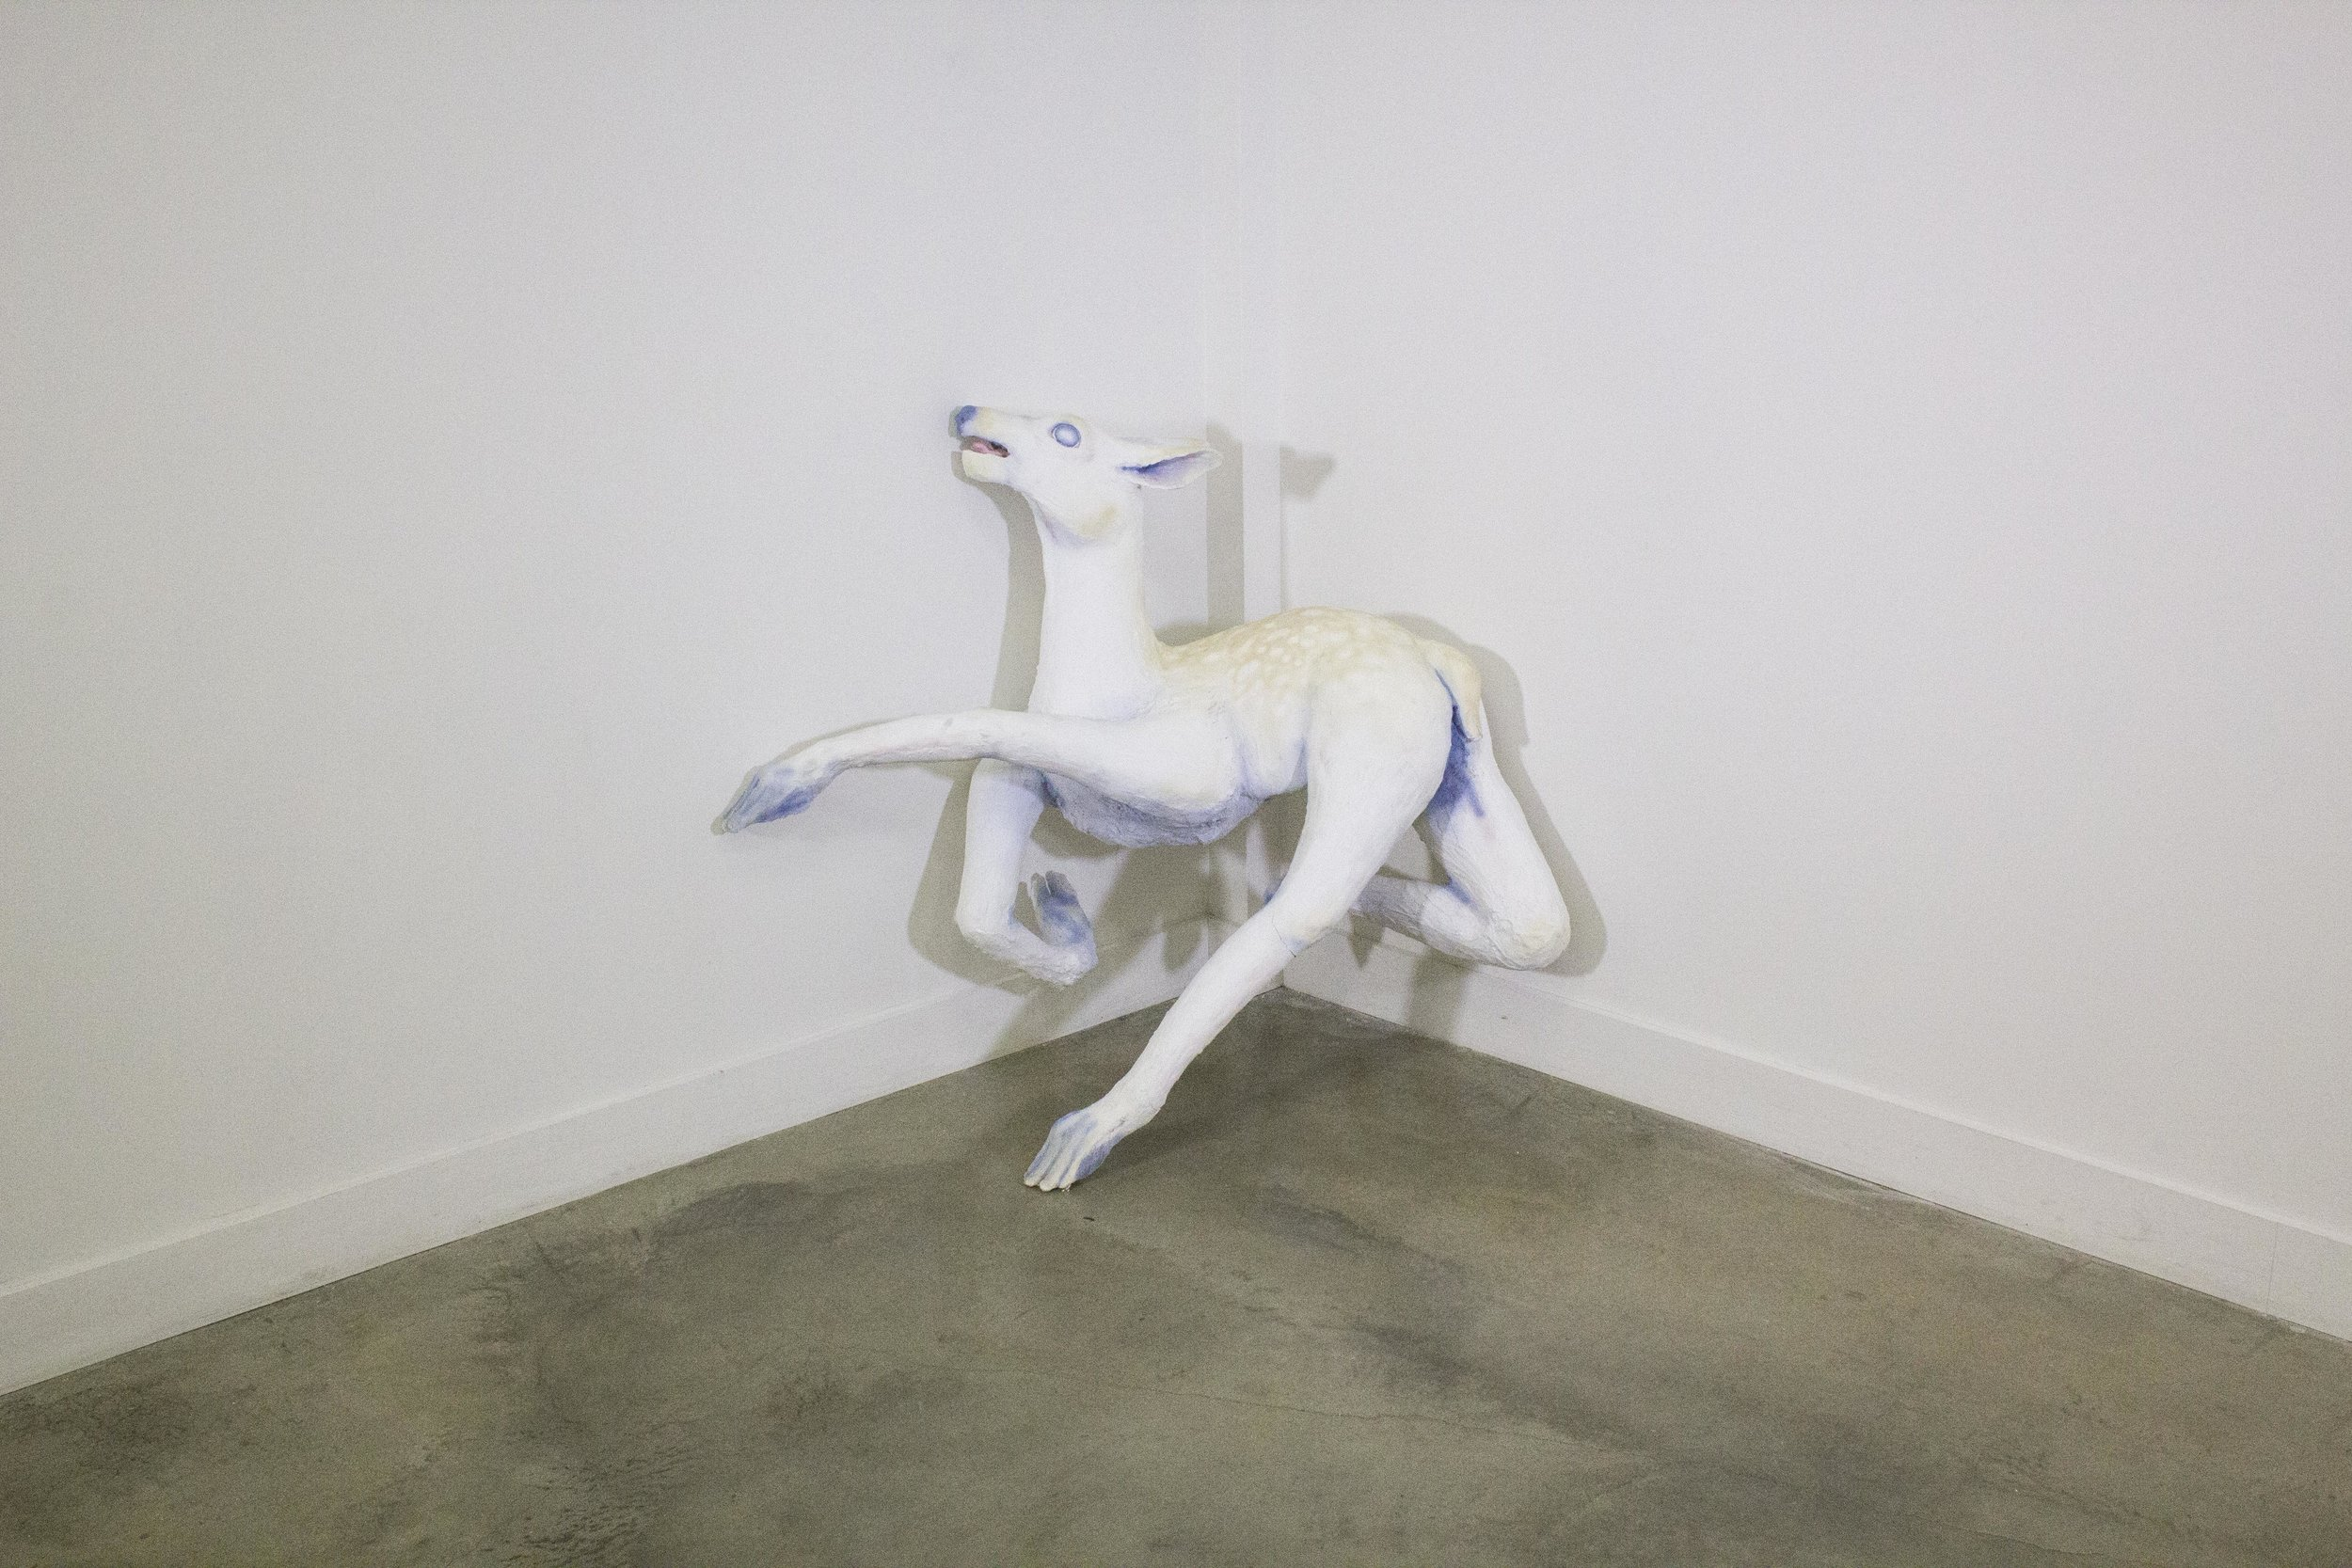 Meagan-Hindel-Sculpture-Deer.jpg